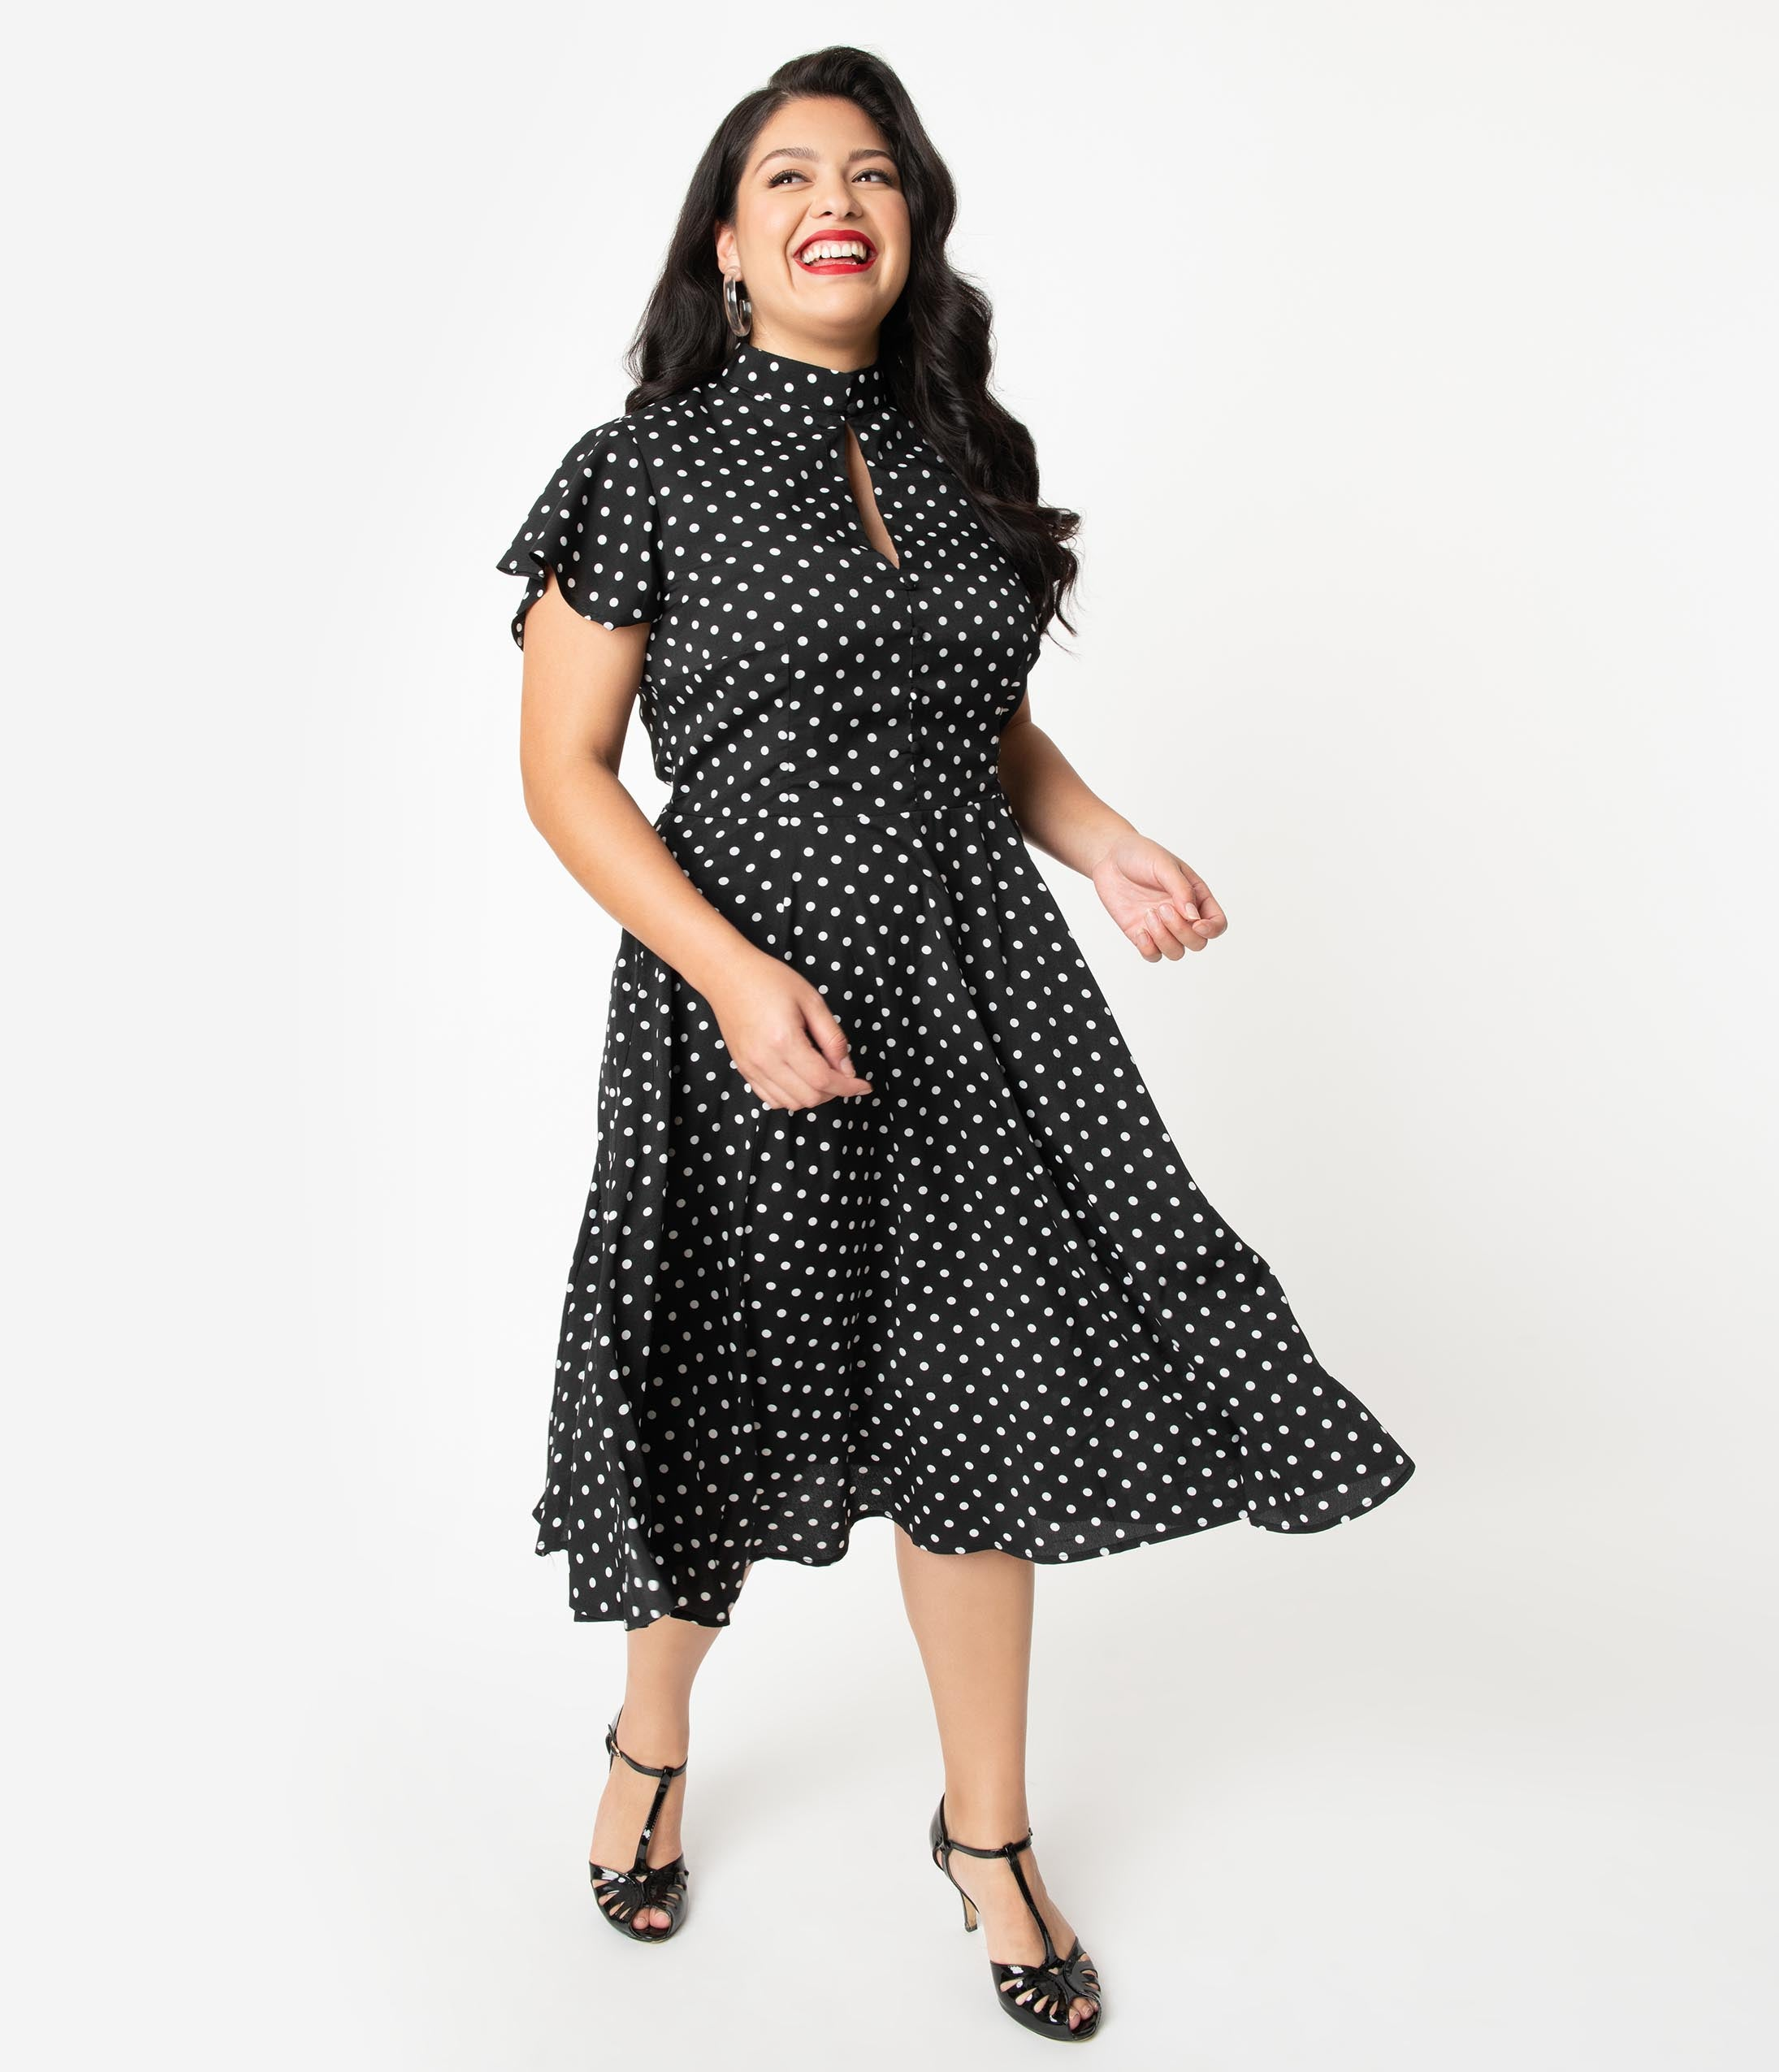 1940s Plus Size Dresses | Swing Dress, Tea Dress Unique Vintage Plus Size 1950S Black  White Polka Dot Baltimore Swing Dress $98.00 AT vintagedancer.com